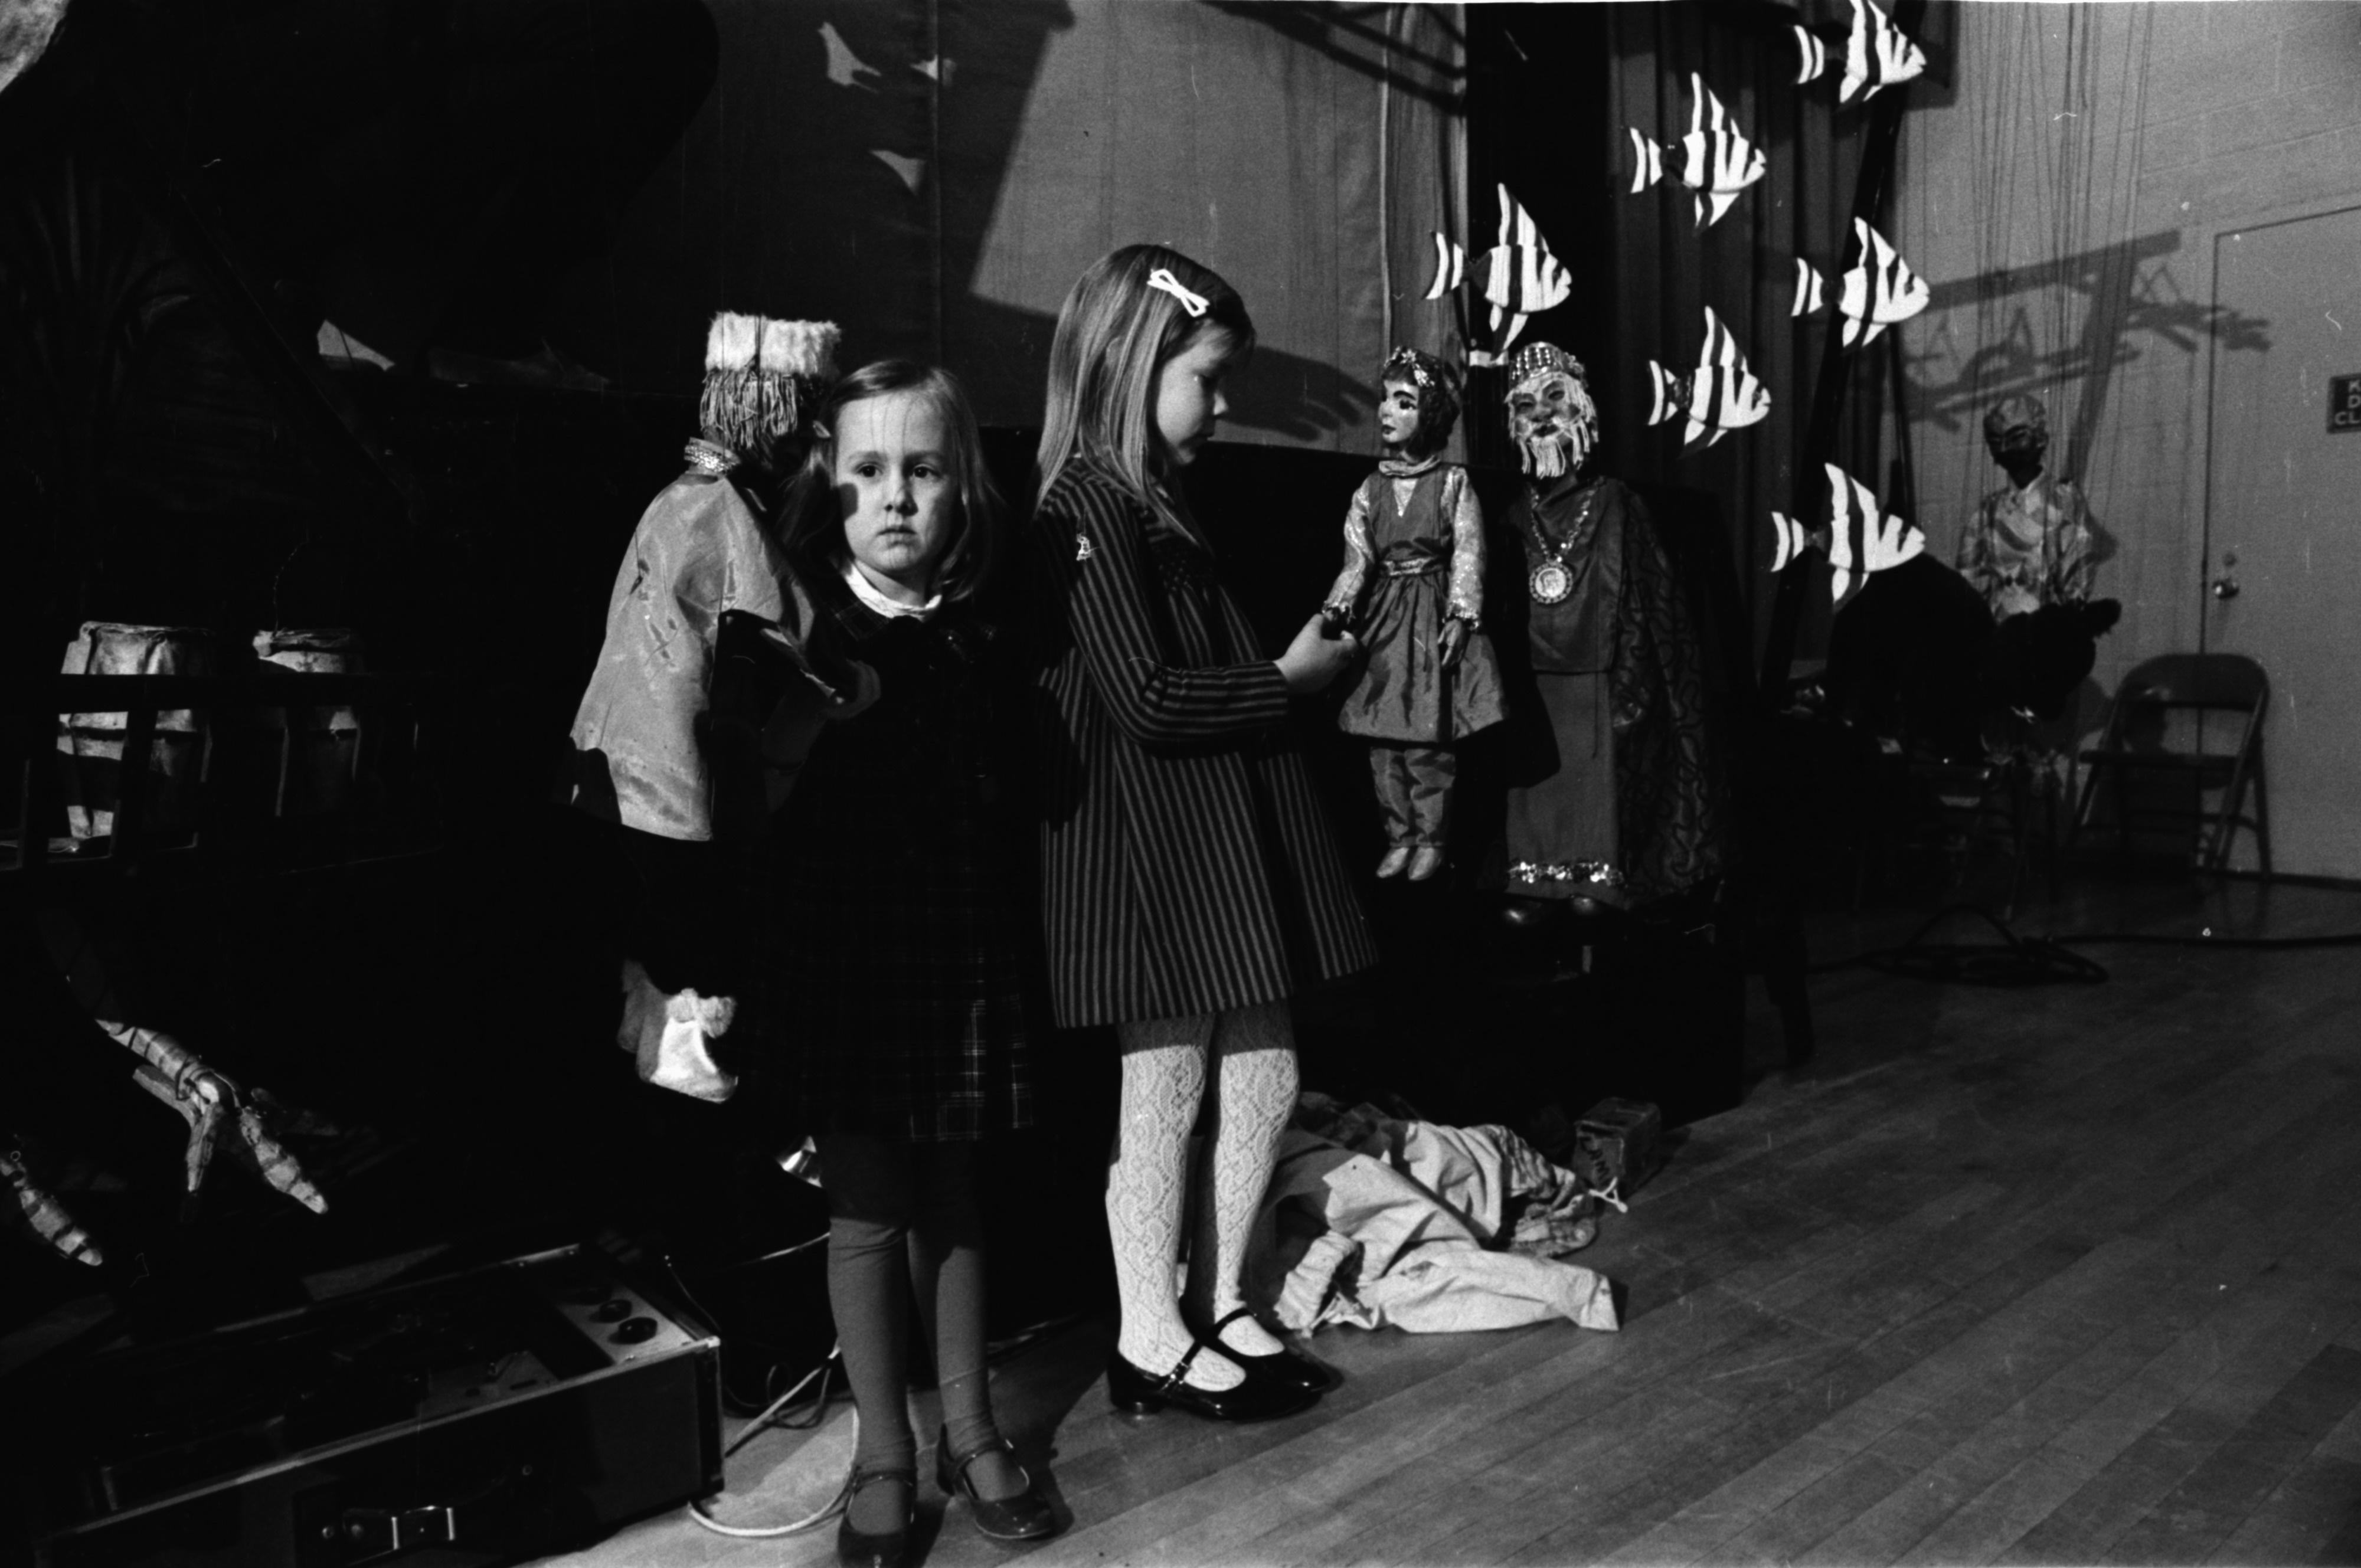 The Meredith Bixby Puppeteers, February 1969 image